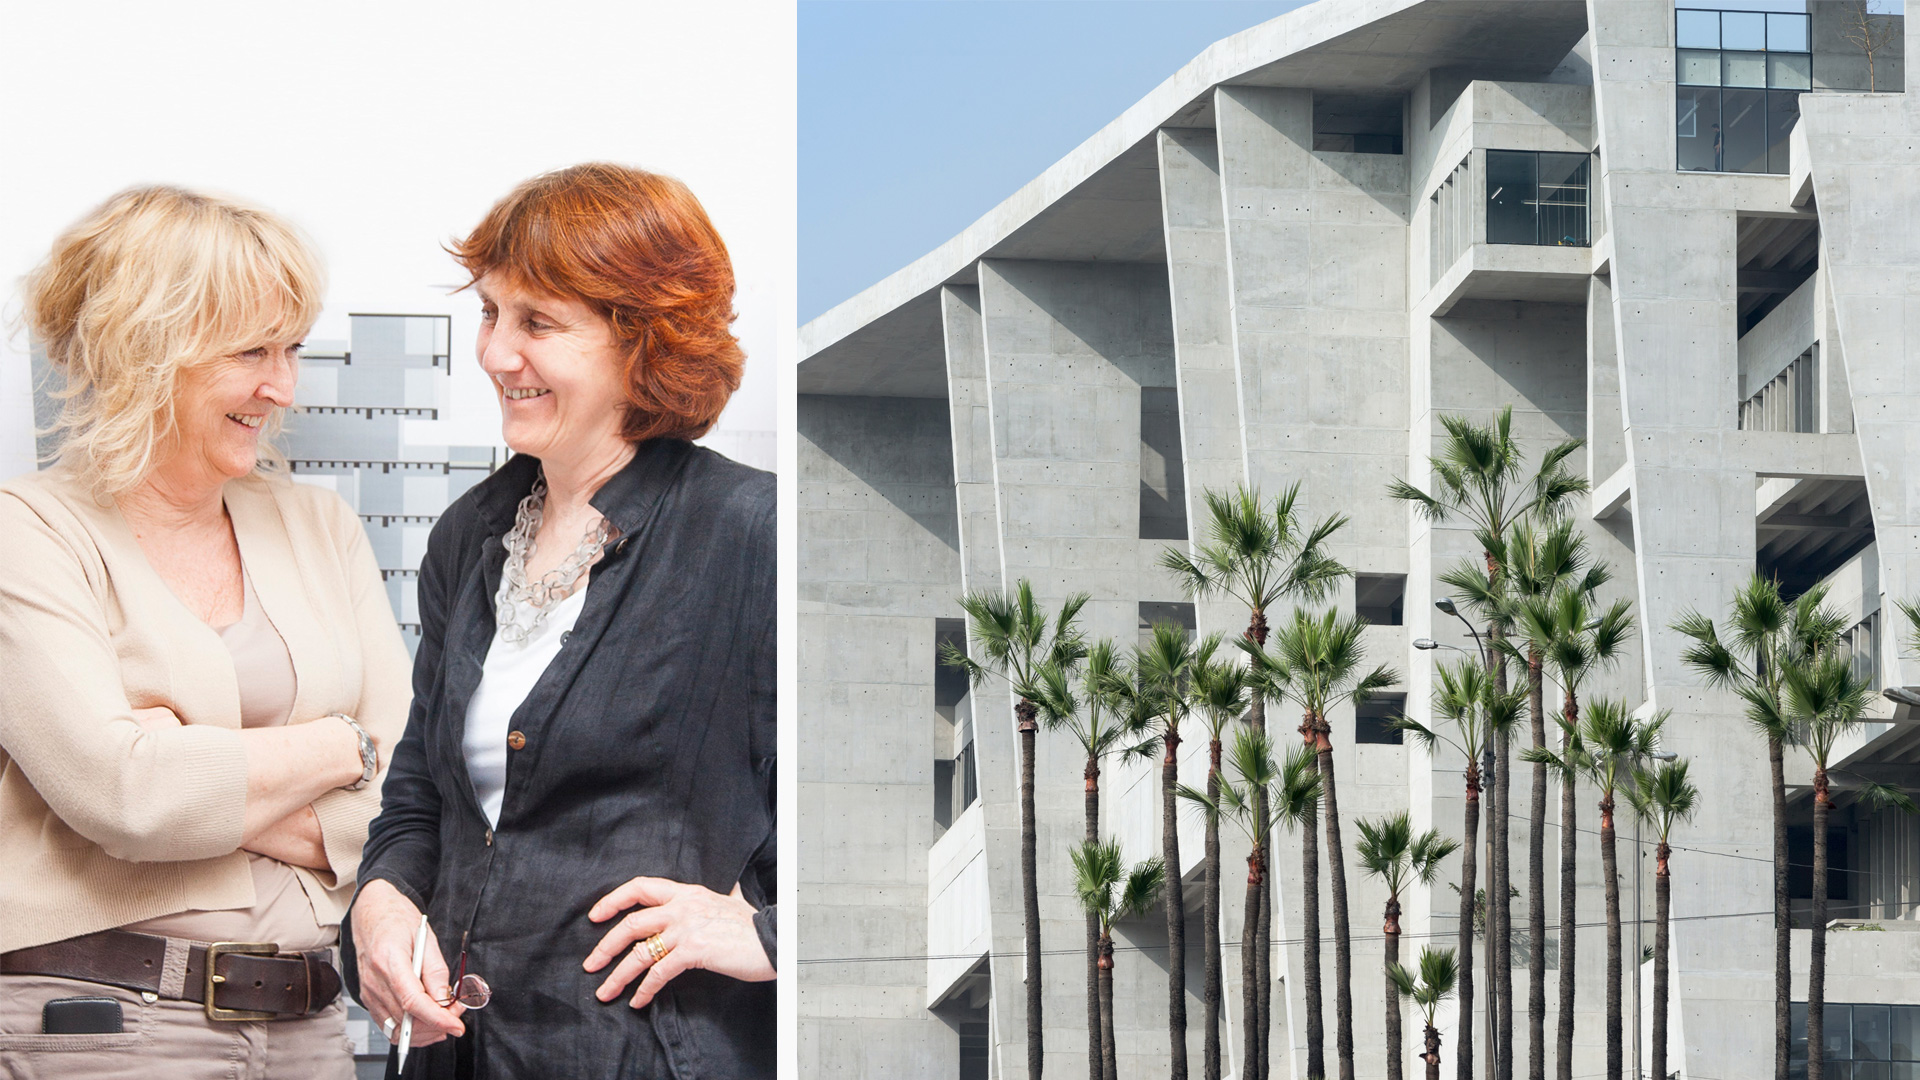 (L): The 2020 Pritzker Architecture Prize laureates Yvonne Farrell and Shelley McNamara, and (R): University Campus, UTEC Lima, Peru (2015) | 2020 Pritzker Architecture Prize | Yvonne Farrell, Shelley McNamara | STIRworld